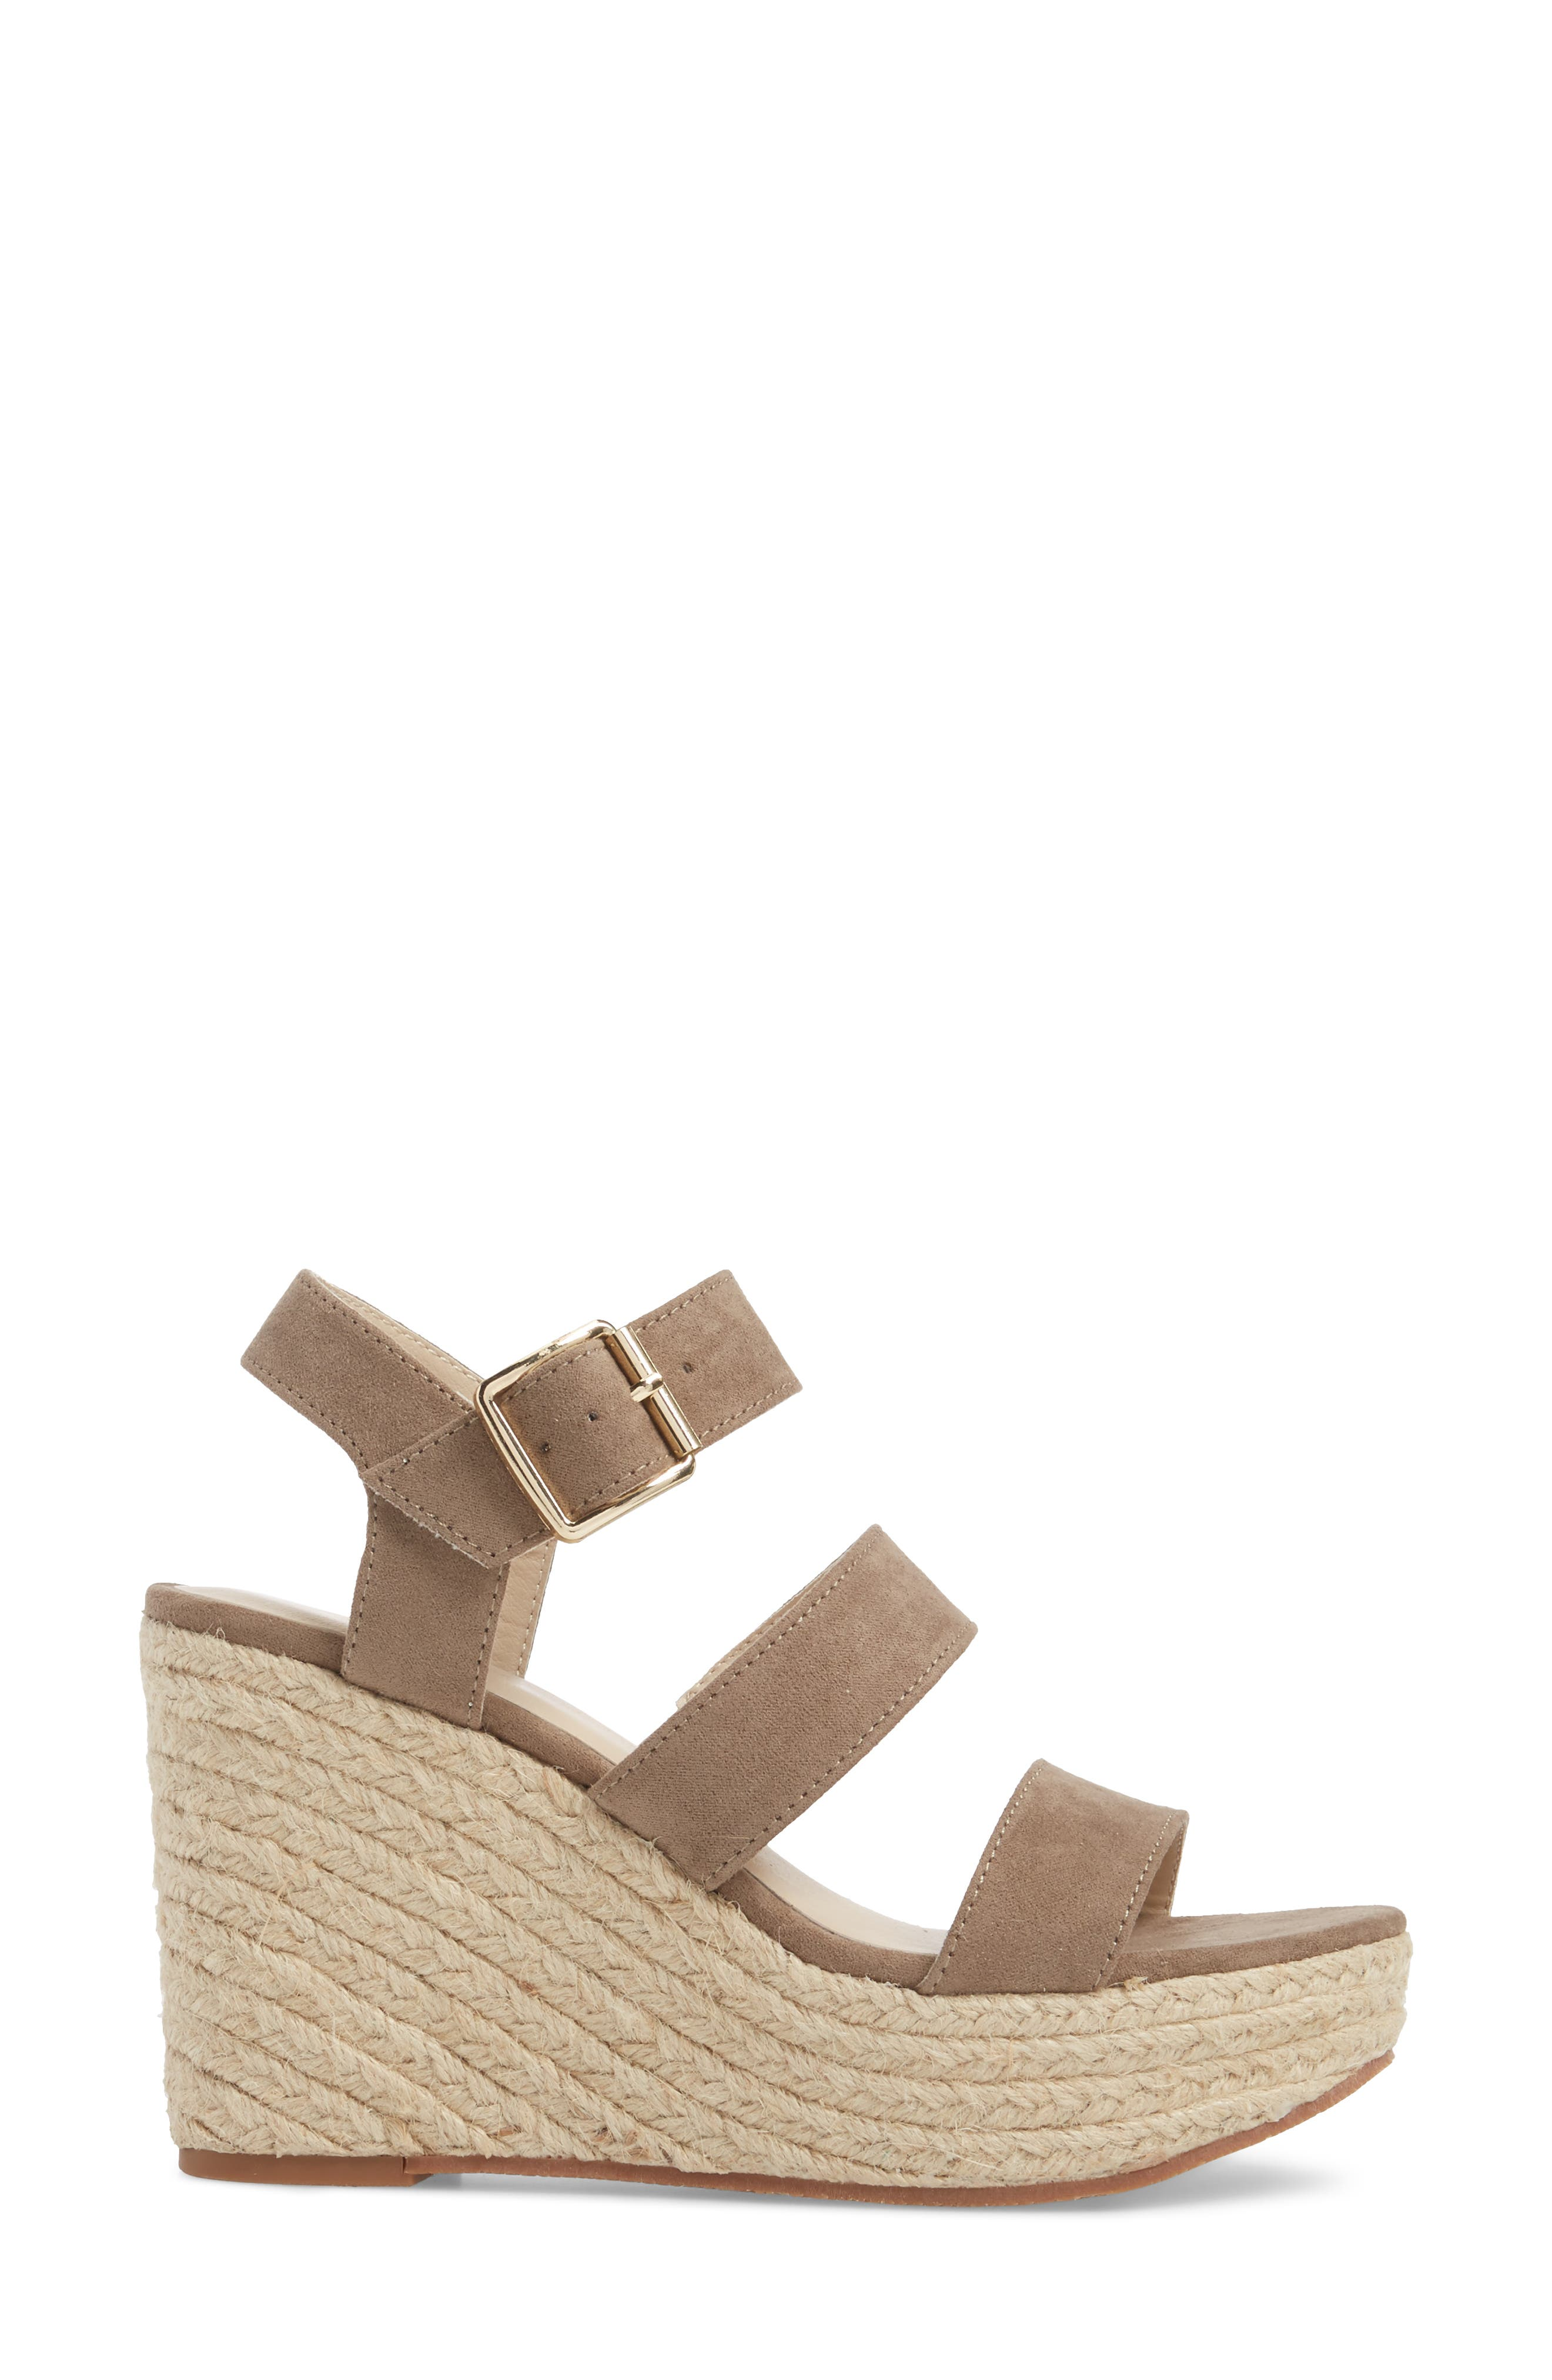 Snack Bar Espadrille Wedge Sandal,                             Alternate thumbnail 3, color,                             Taupe Suede